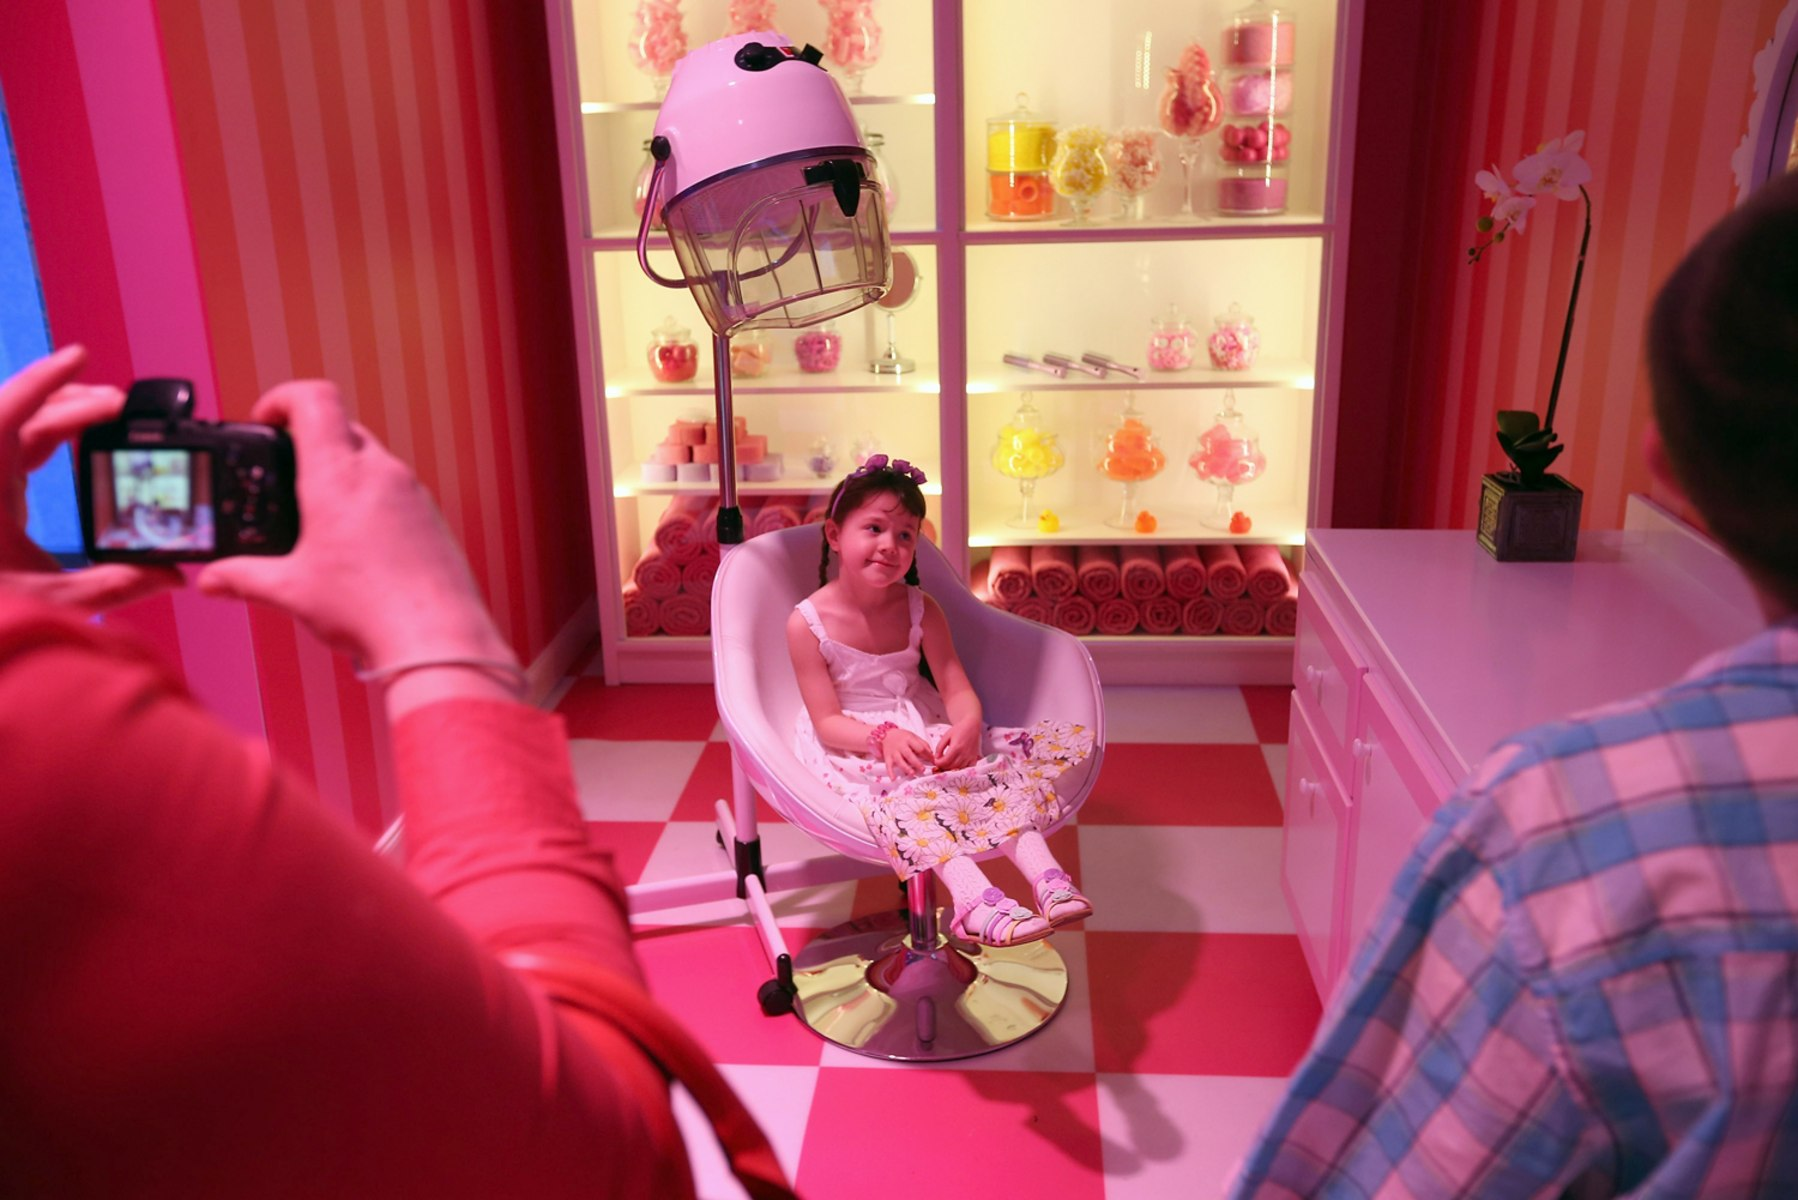 Image barbie dreamhouse experience opens in berlin